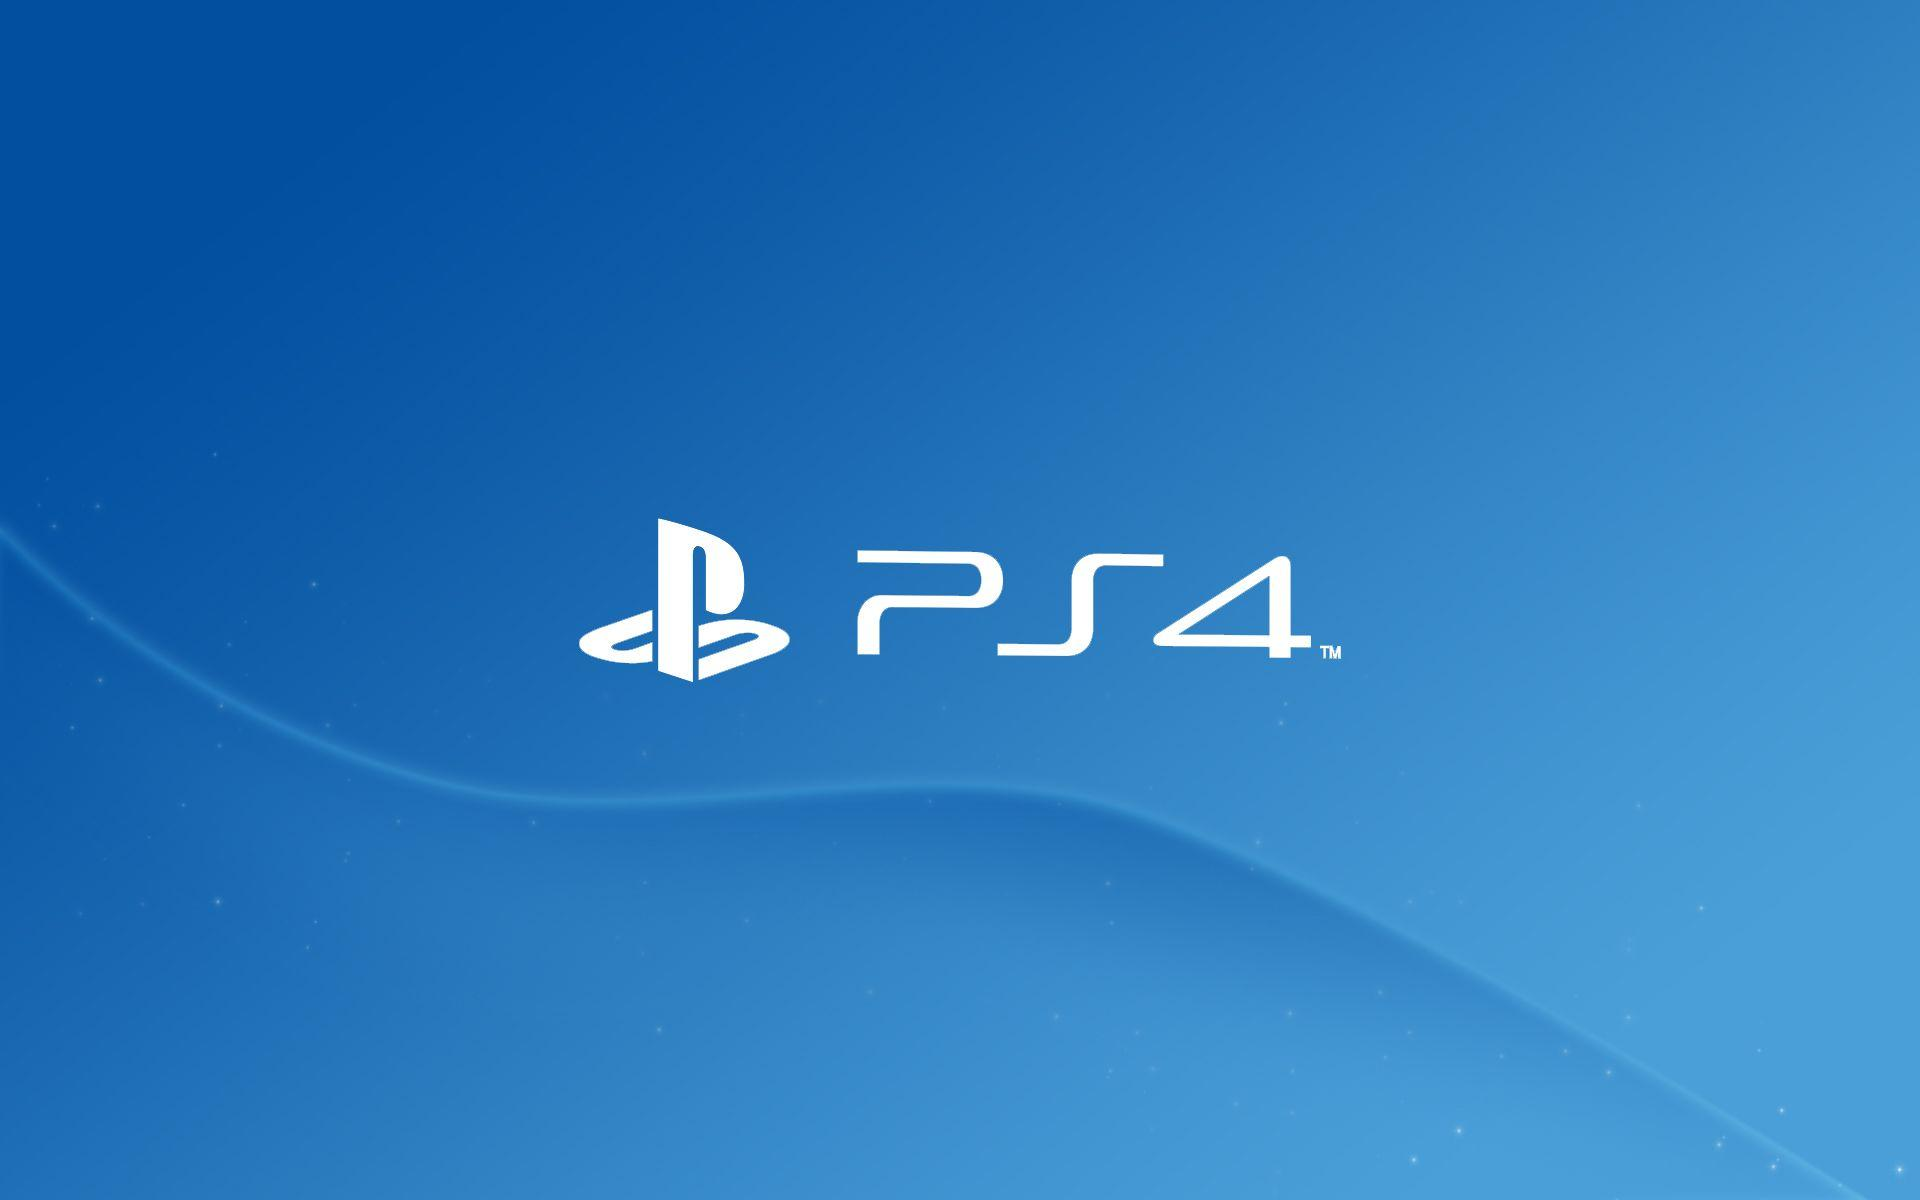 Playstation 4 Logo Wallpapers Top Free Playstation 4 Logo Backgrounds Wallpaperaccess